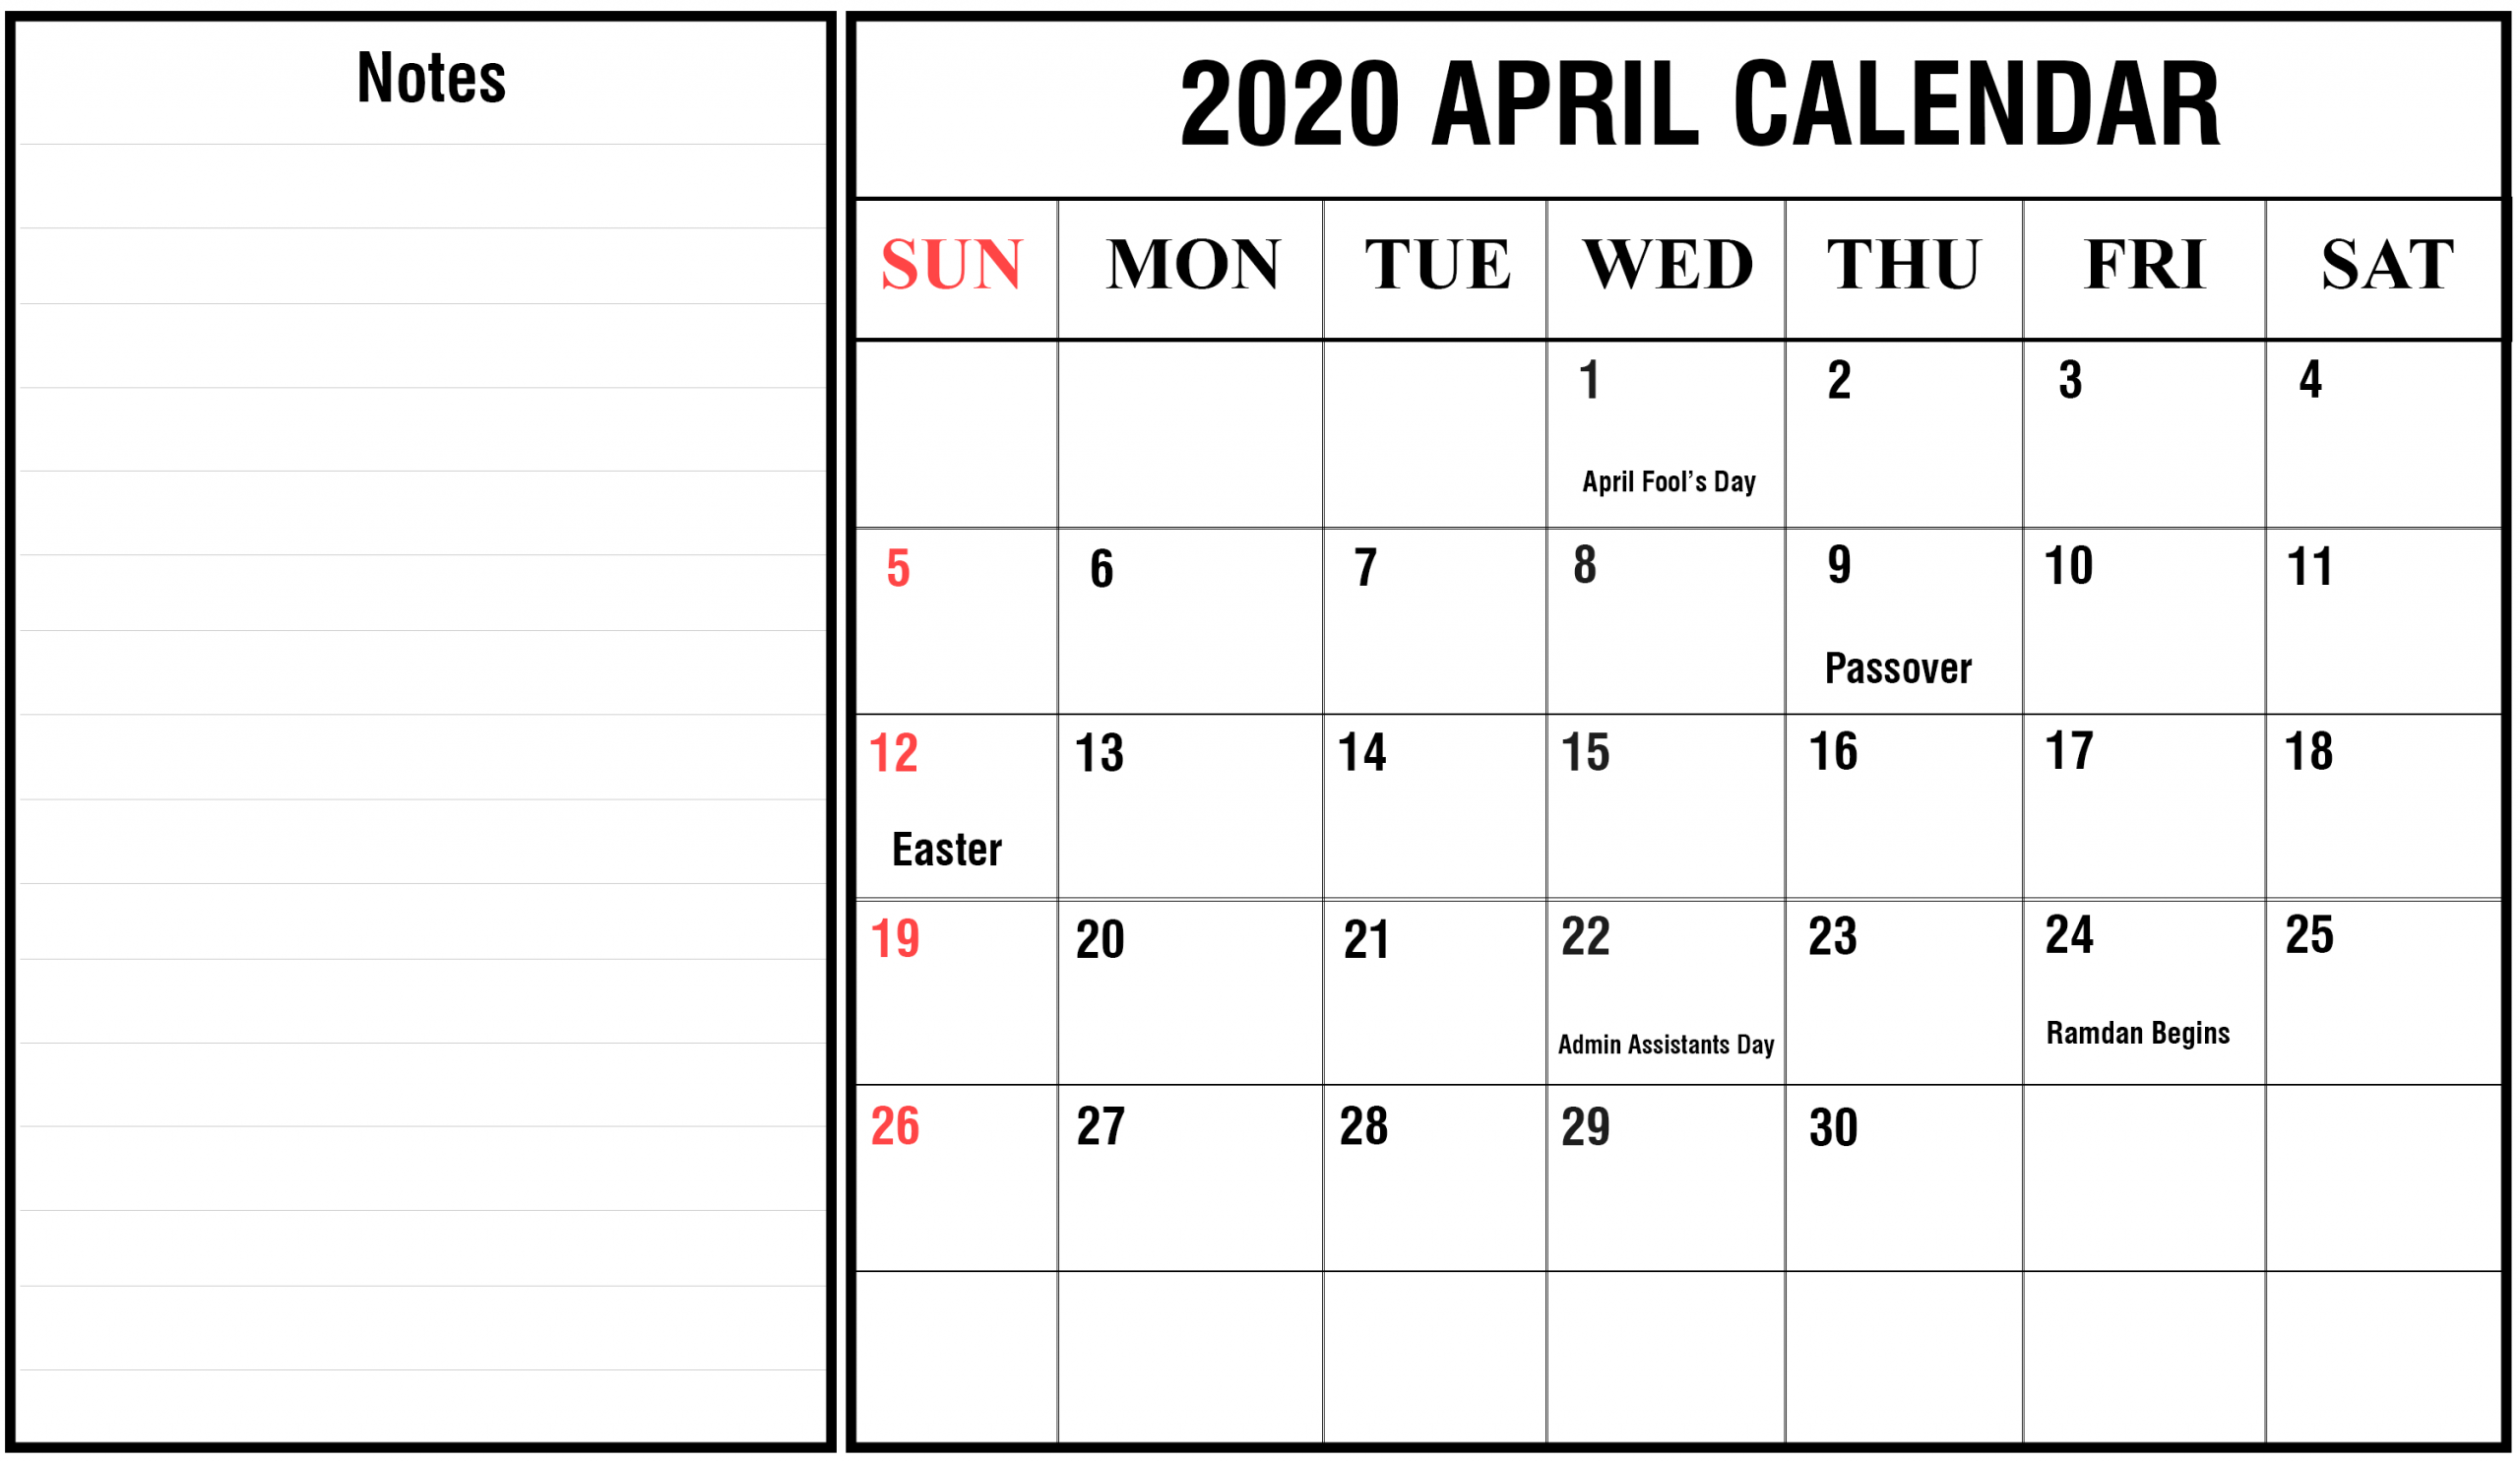 Free Blank April Calendar 2020 Printable Template Editable Free Weekly Calendar Fillable With Times Starting At 6Am